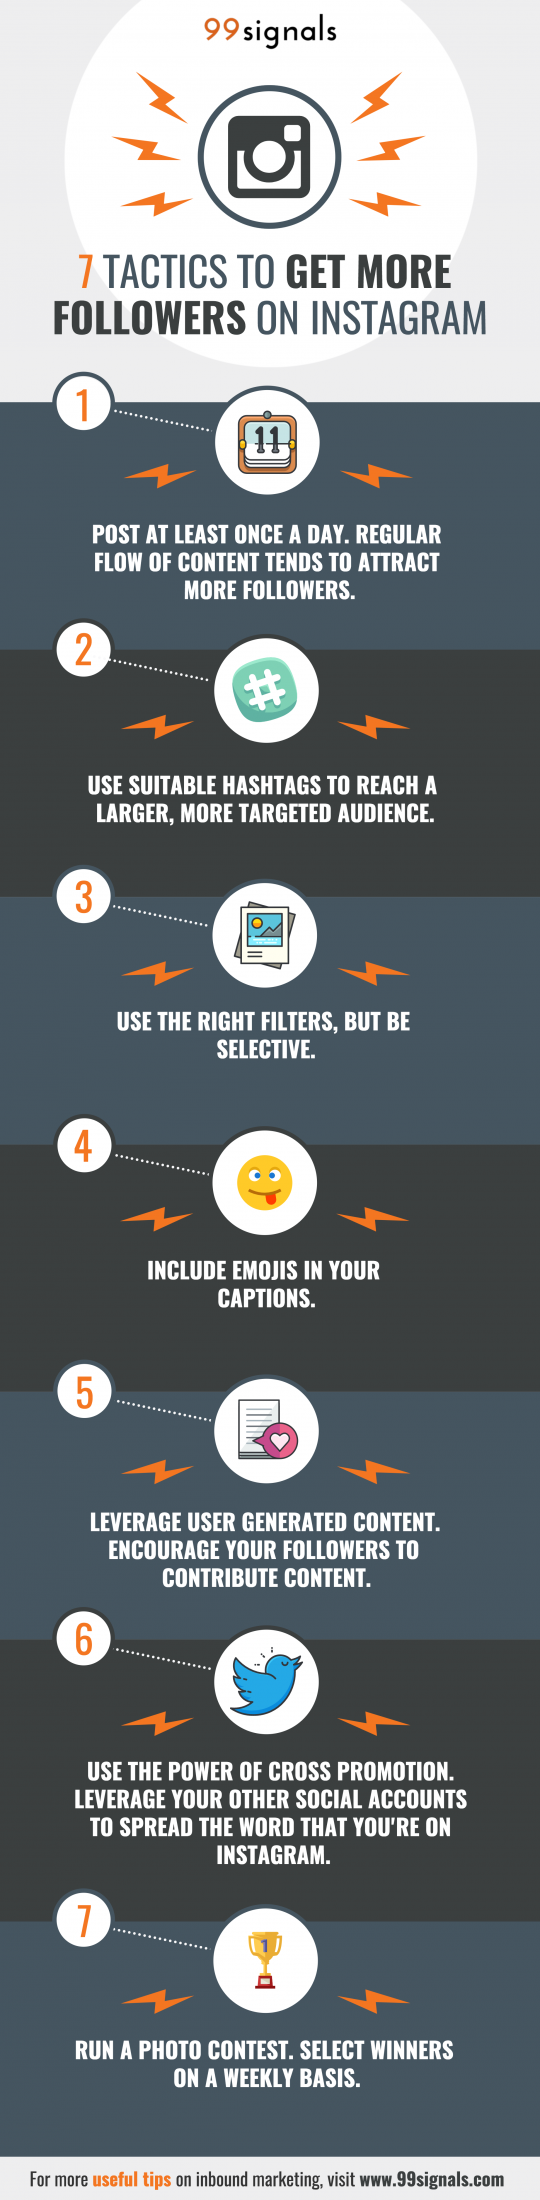 7 Simple Tactics to Get More Followers on Instagram